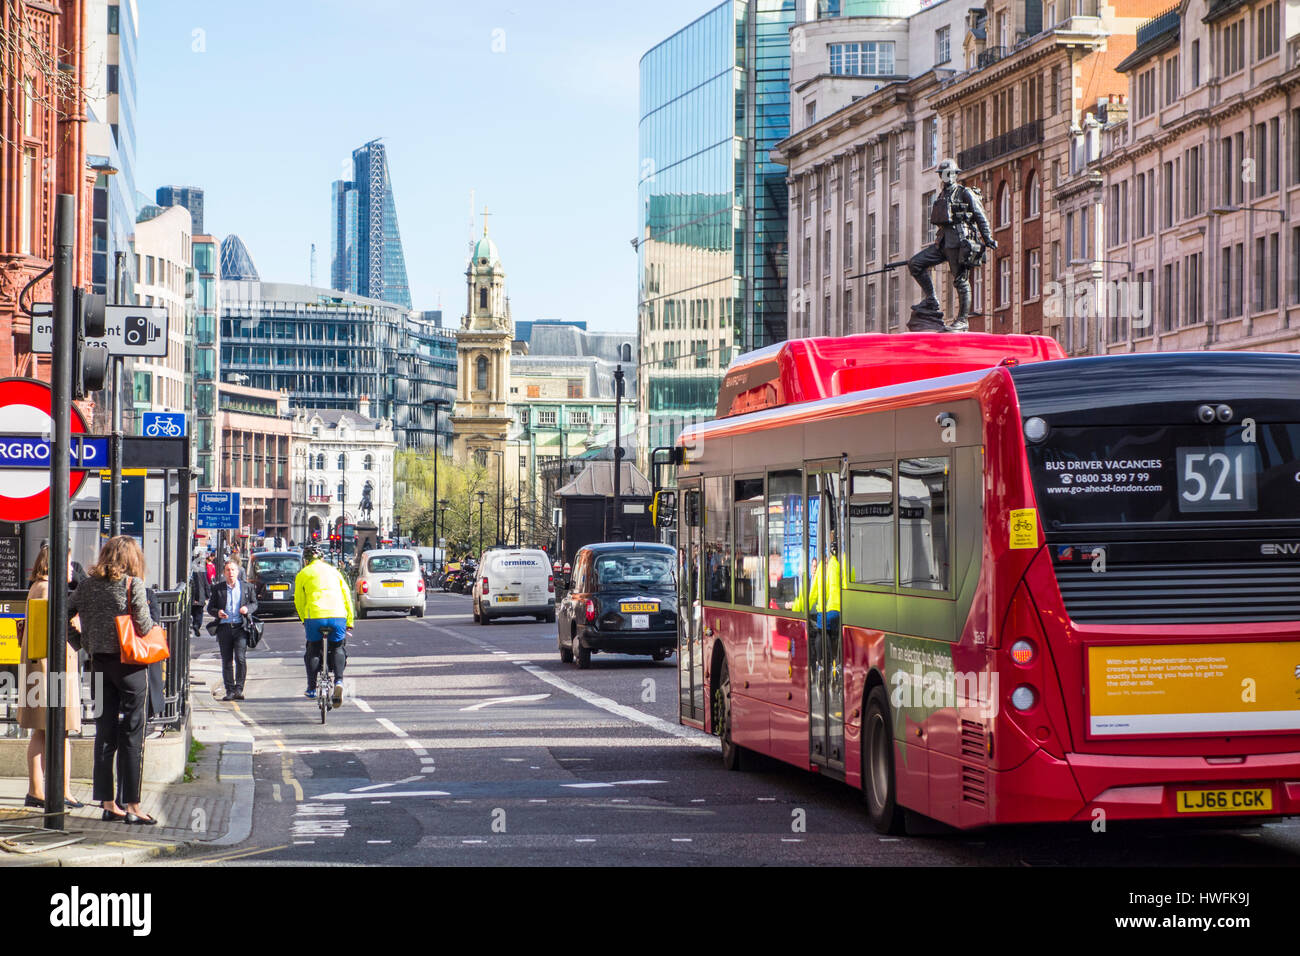 Street view of a bus and taxi in traffic on Holborn with City of London skyline, UK. - Stock Image